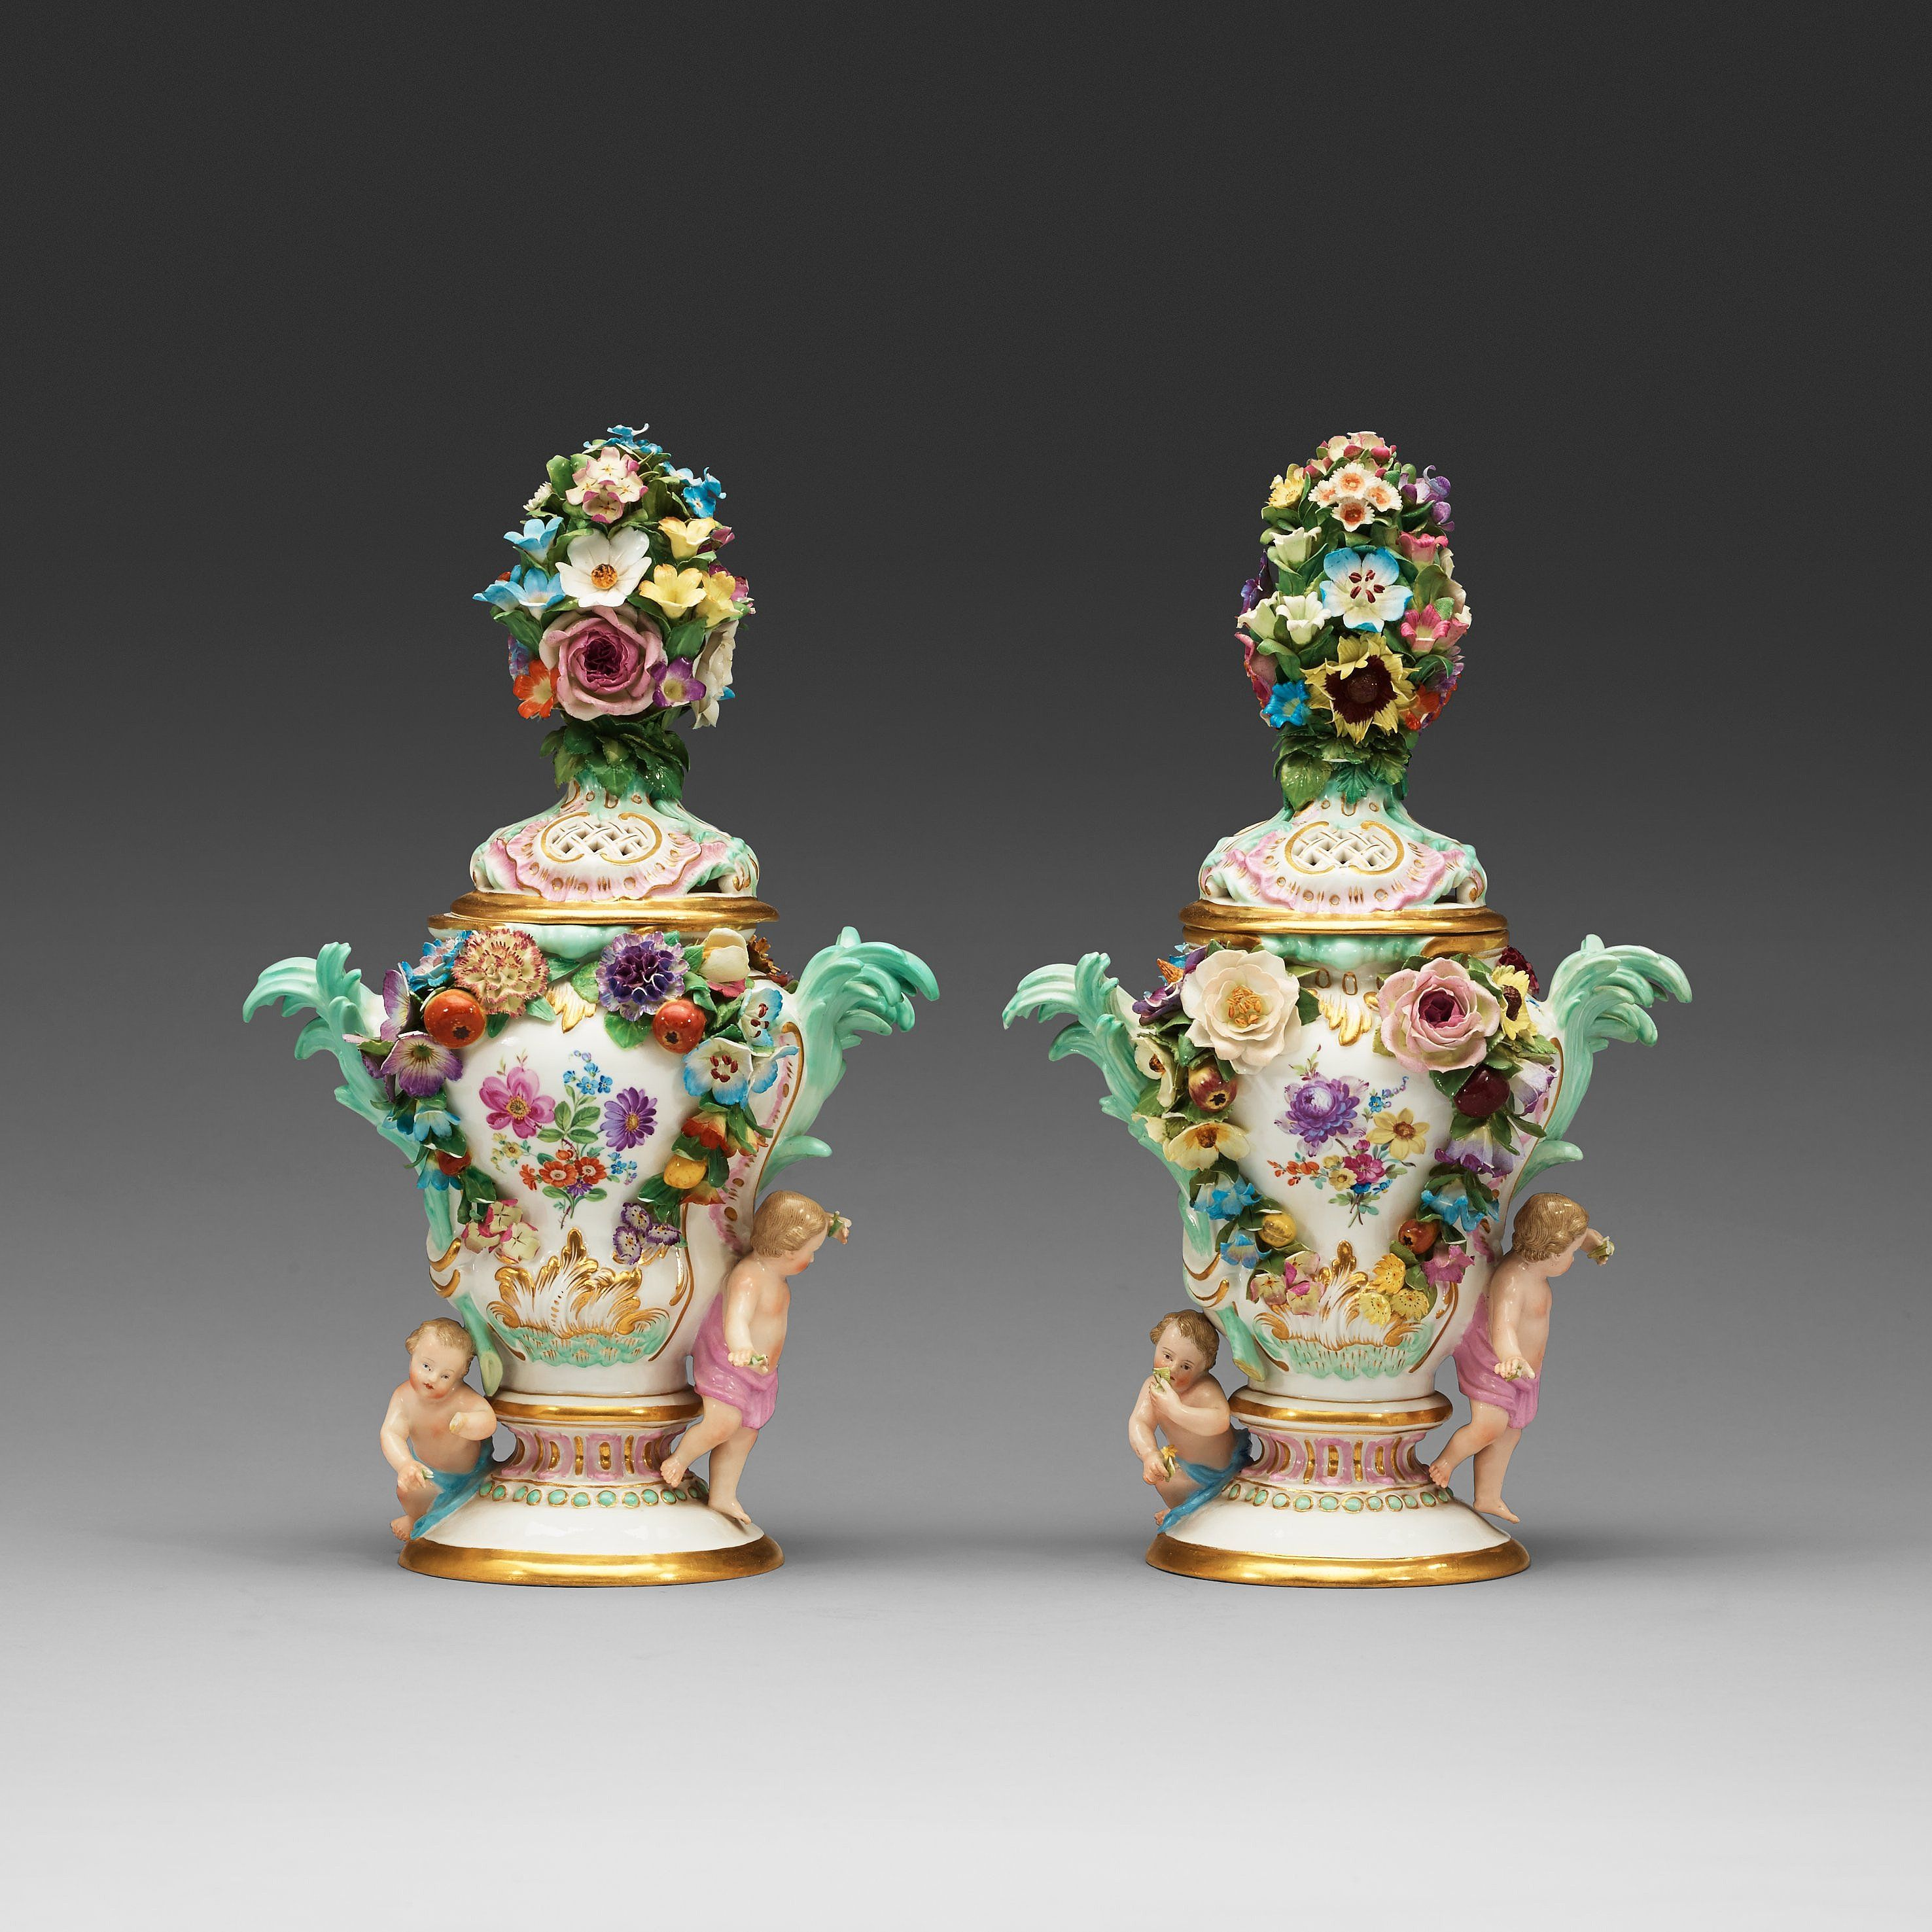 A PAIR OF MEISSEN POT-PURRI JARS WITH COVERS, 19TH CENTURY.